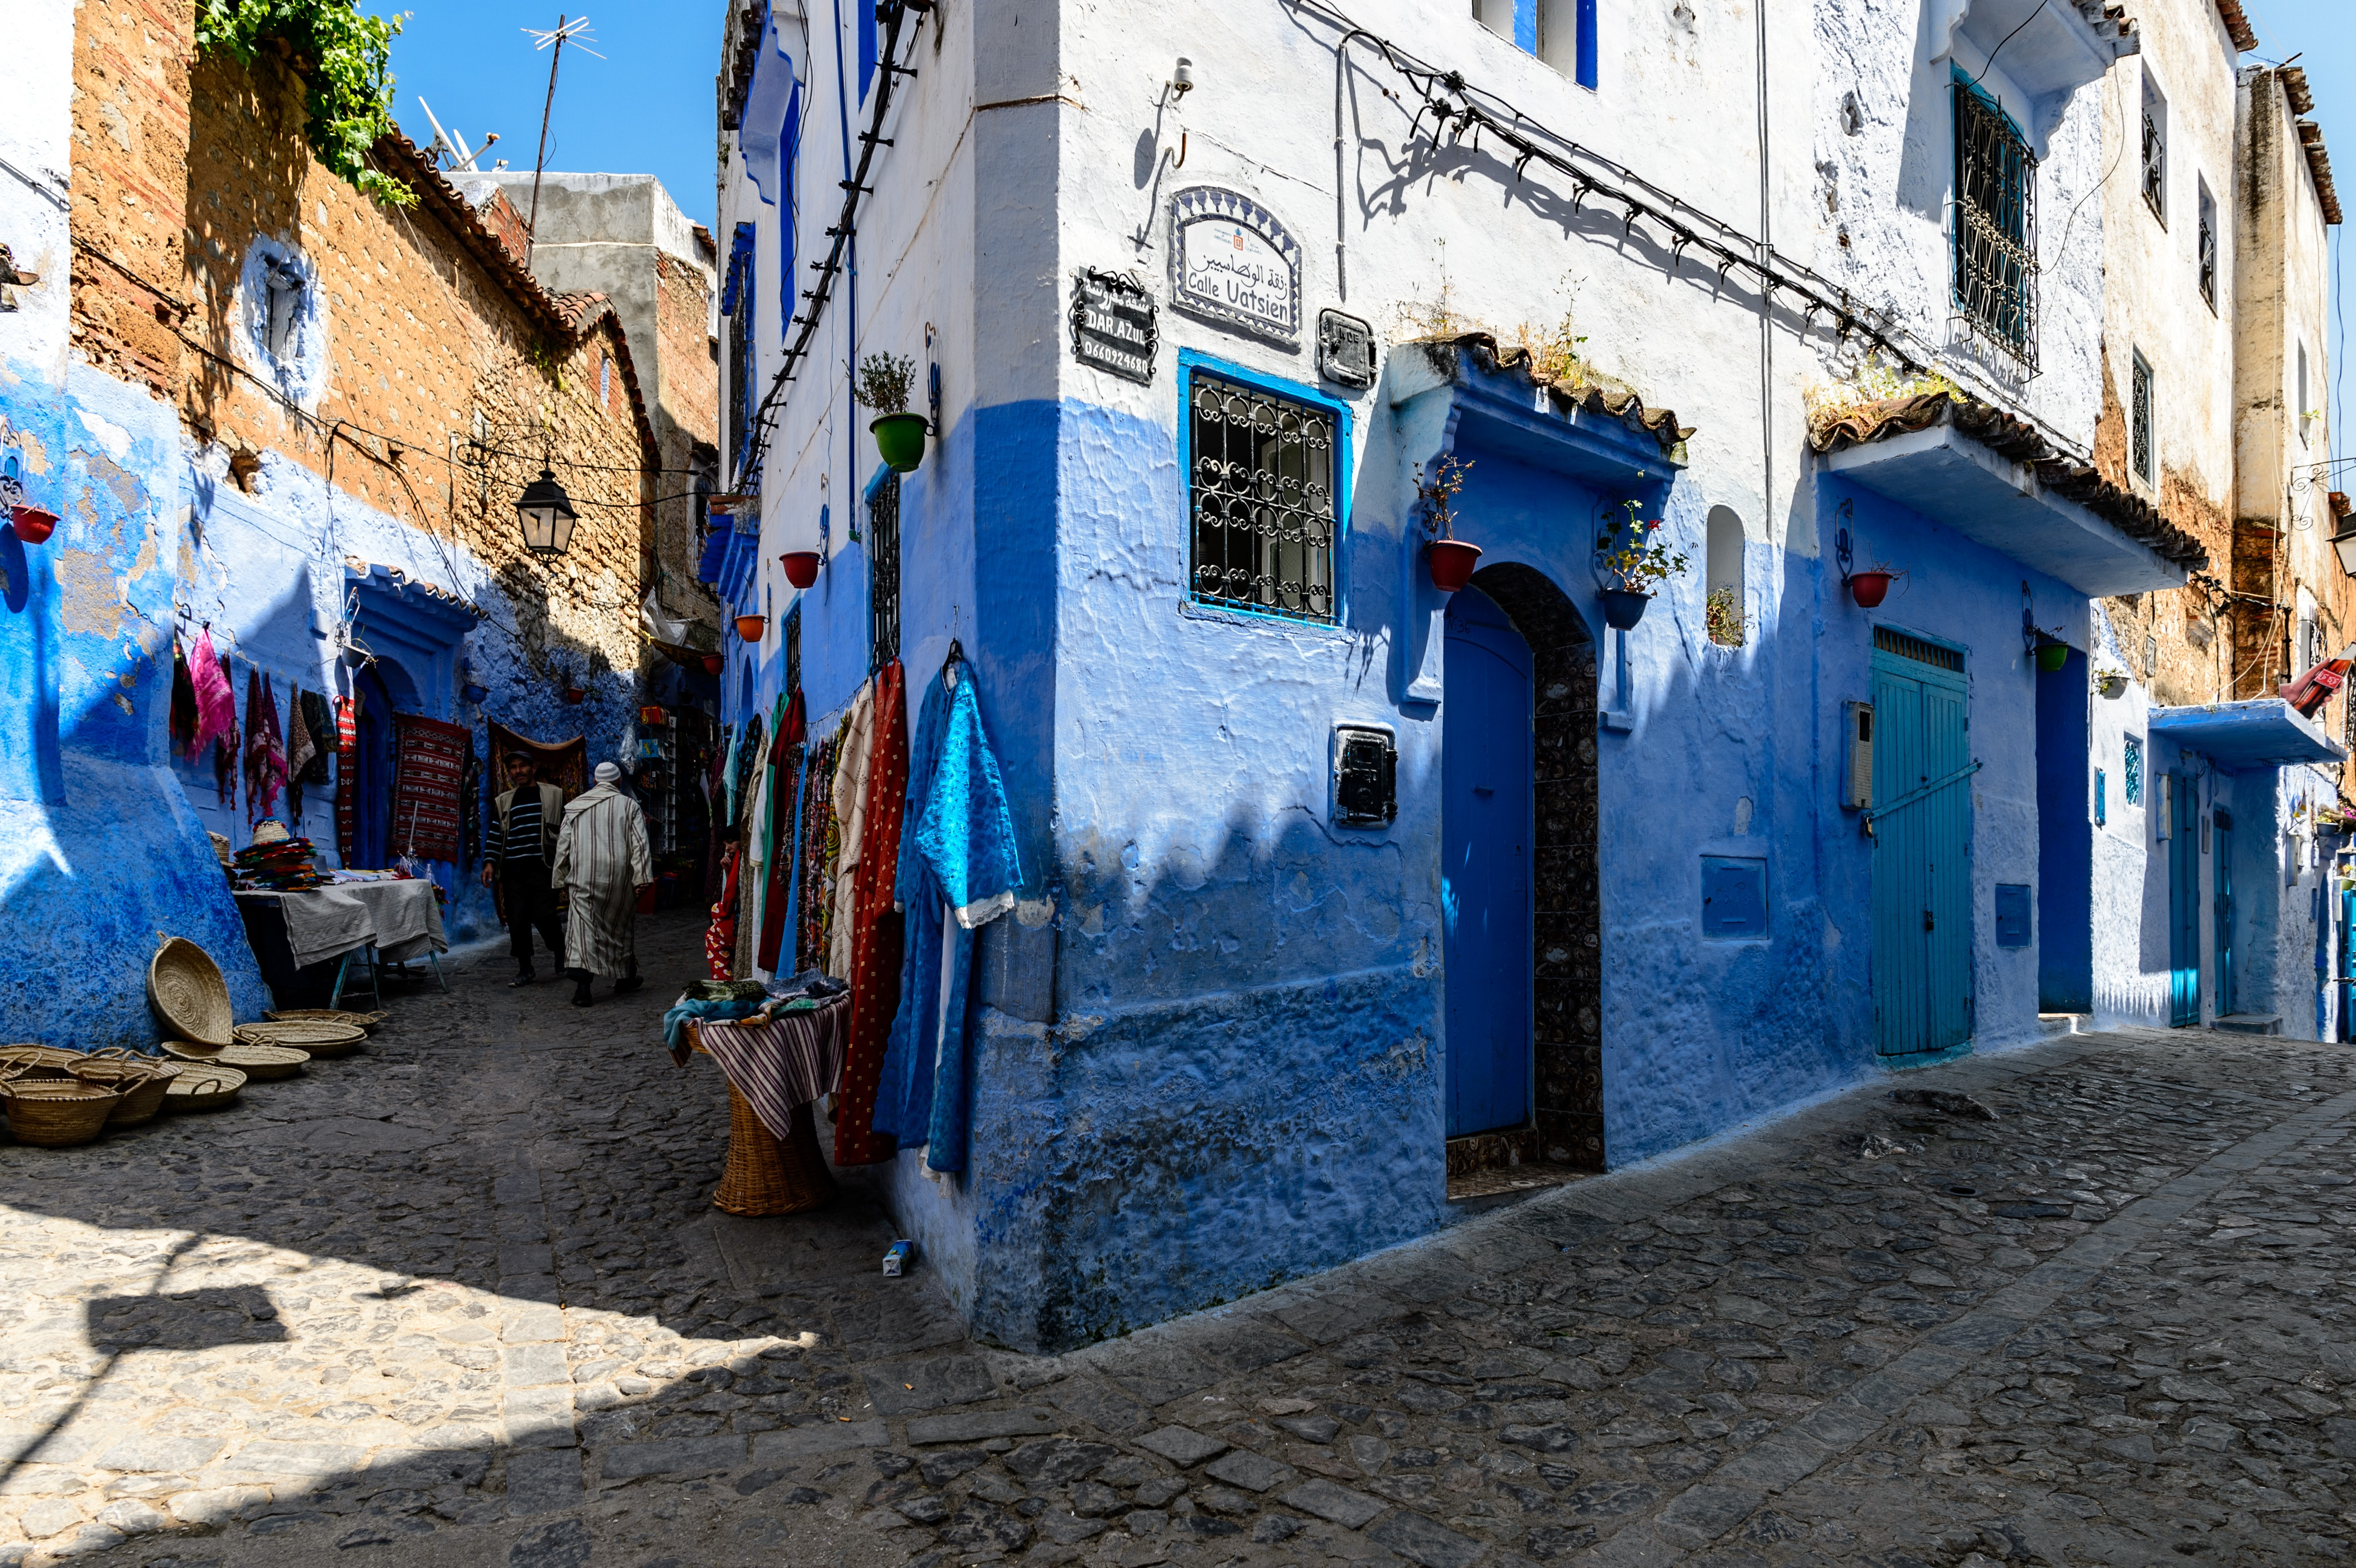 two person walking in between blue and white concrete building